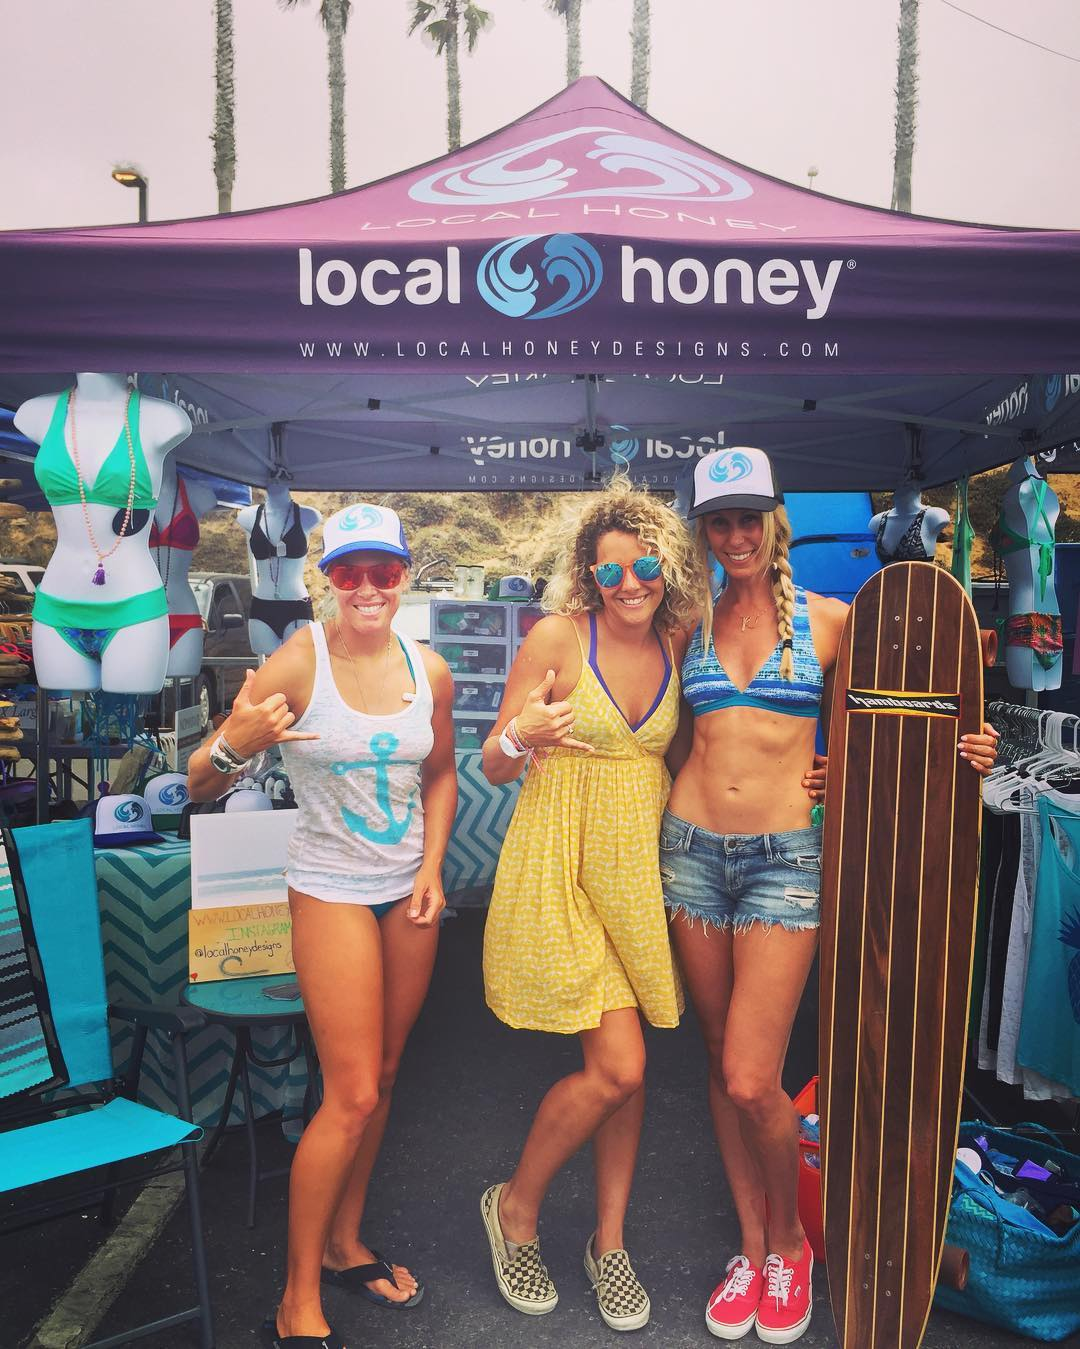 Join us Honey's at the Supergirl Pro event in Oceanside, Ca!!!! 20% off during the event, plus some secret sale items